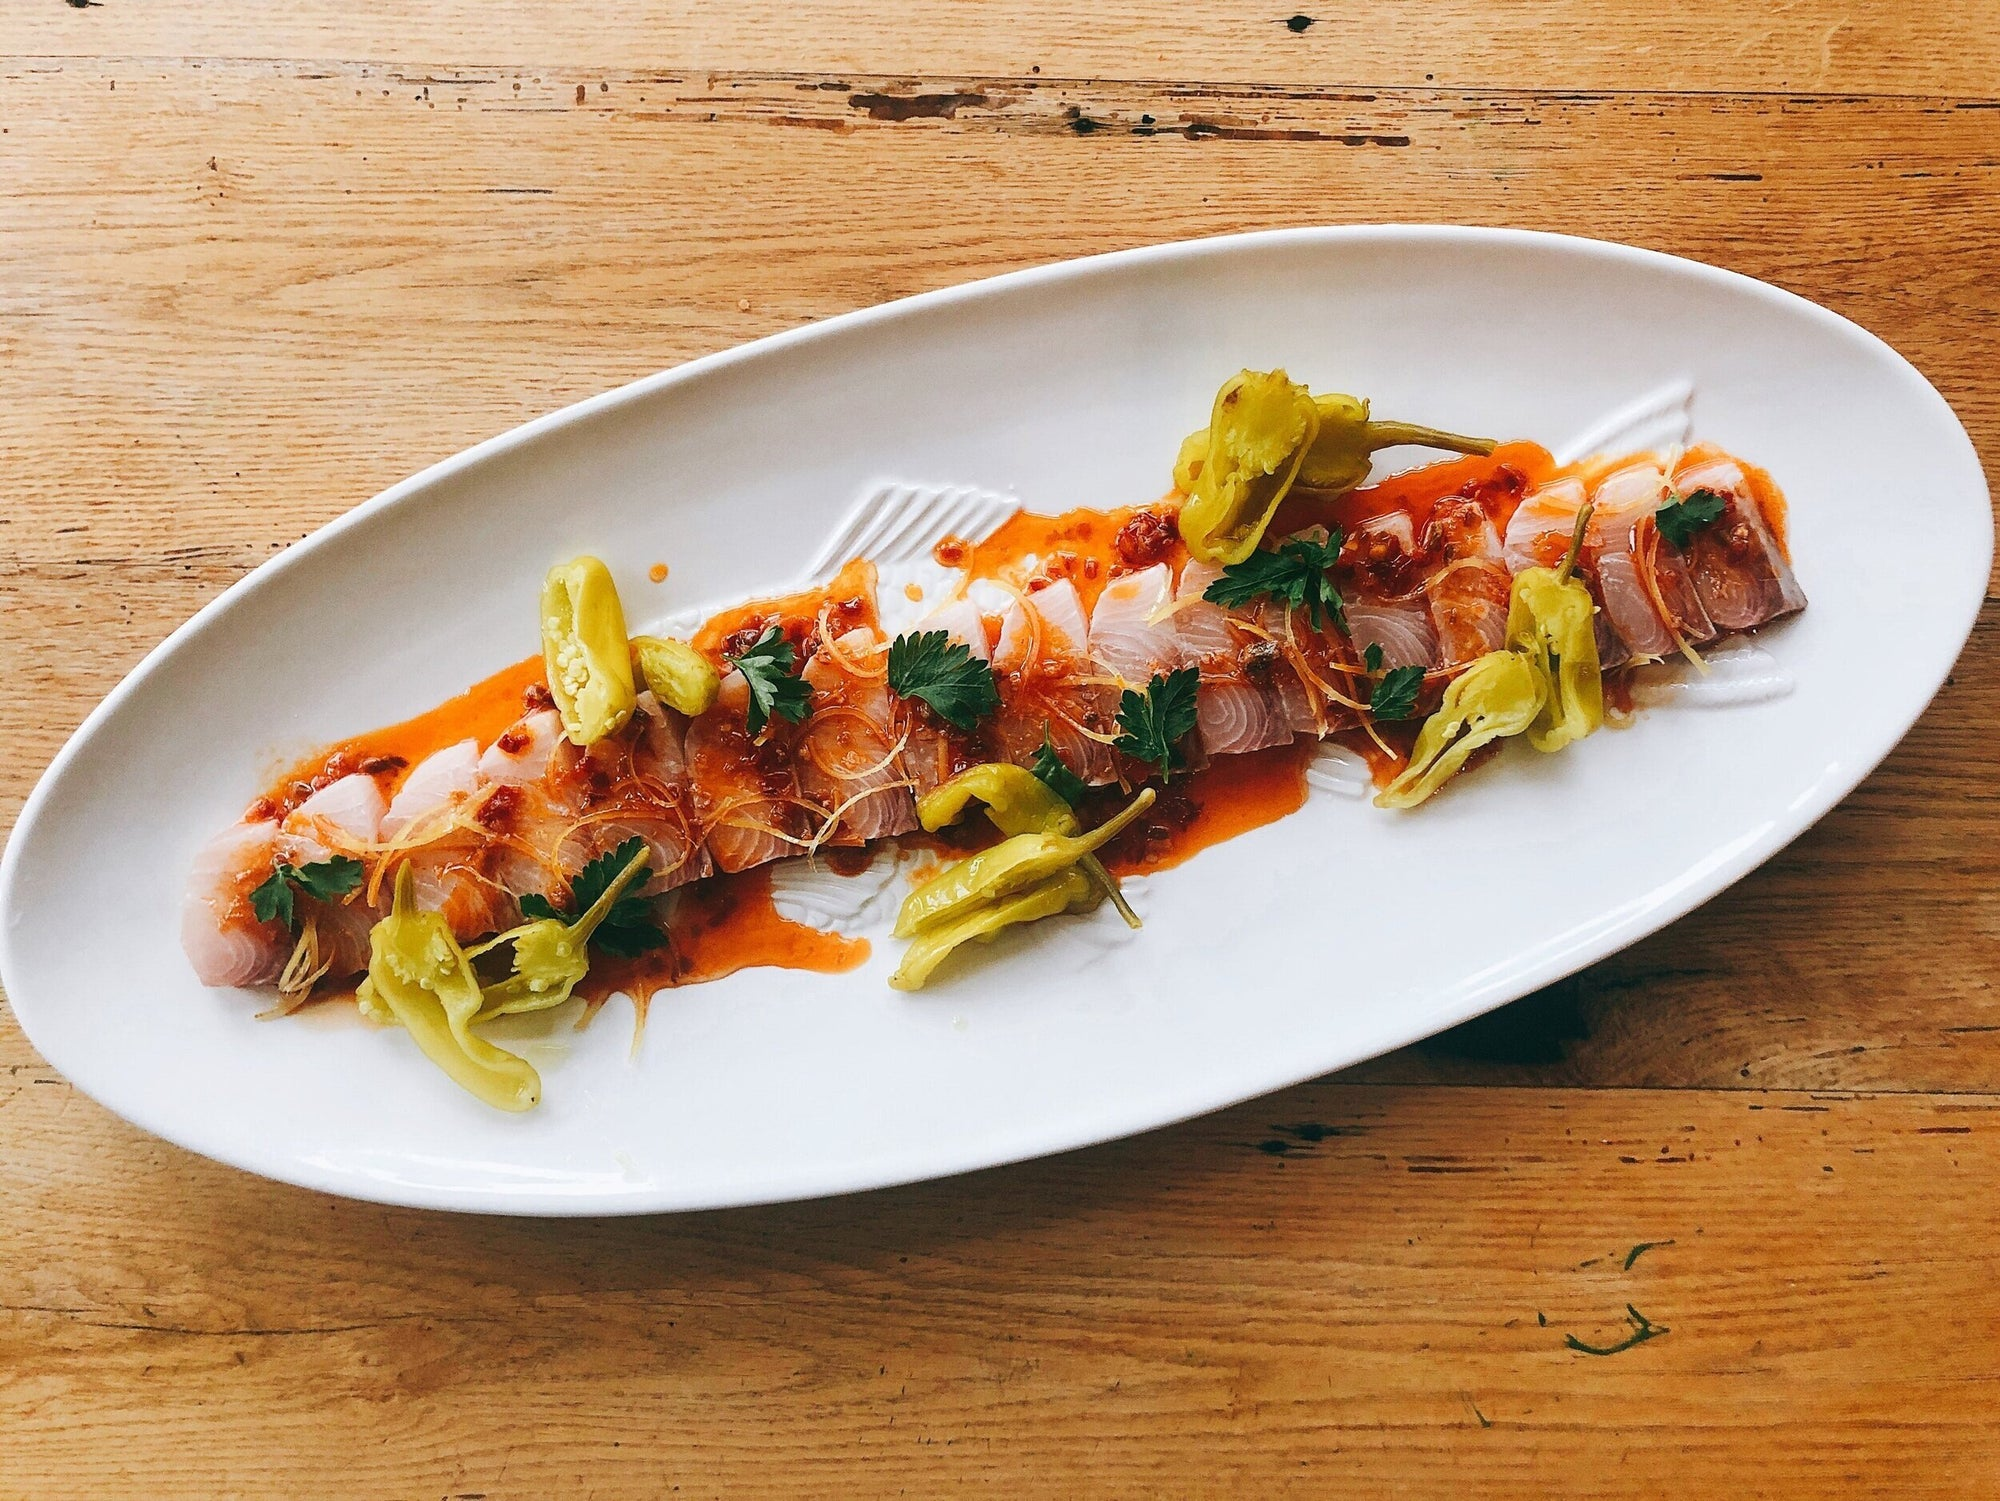 Chefs at Home: King Kampachi Crudo with Calabrian Chili Vinaigrette